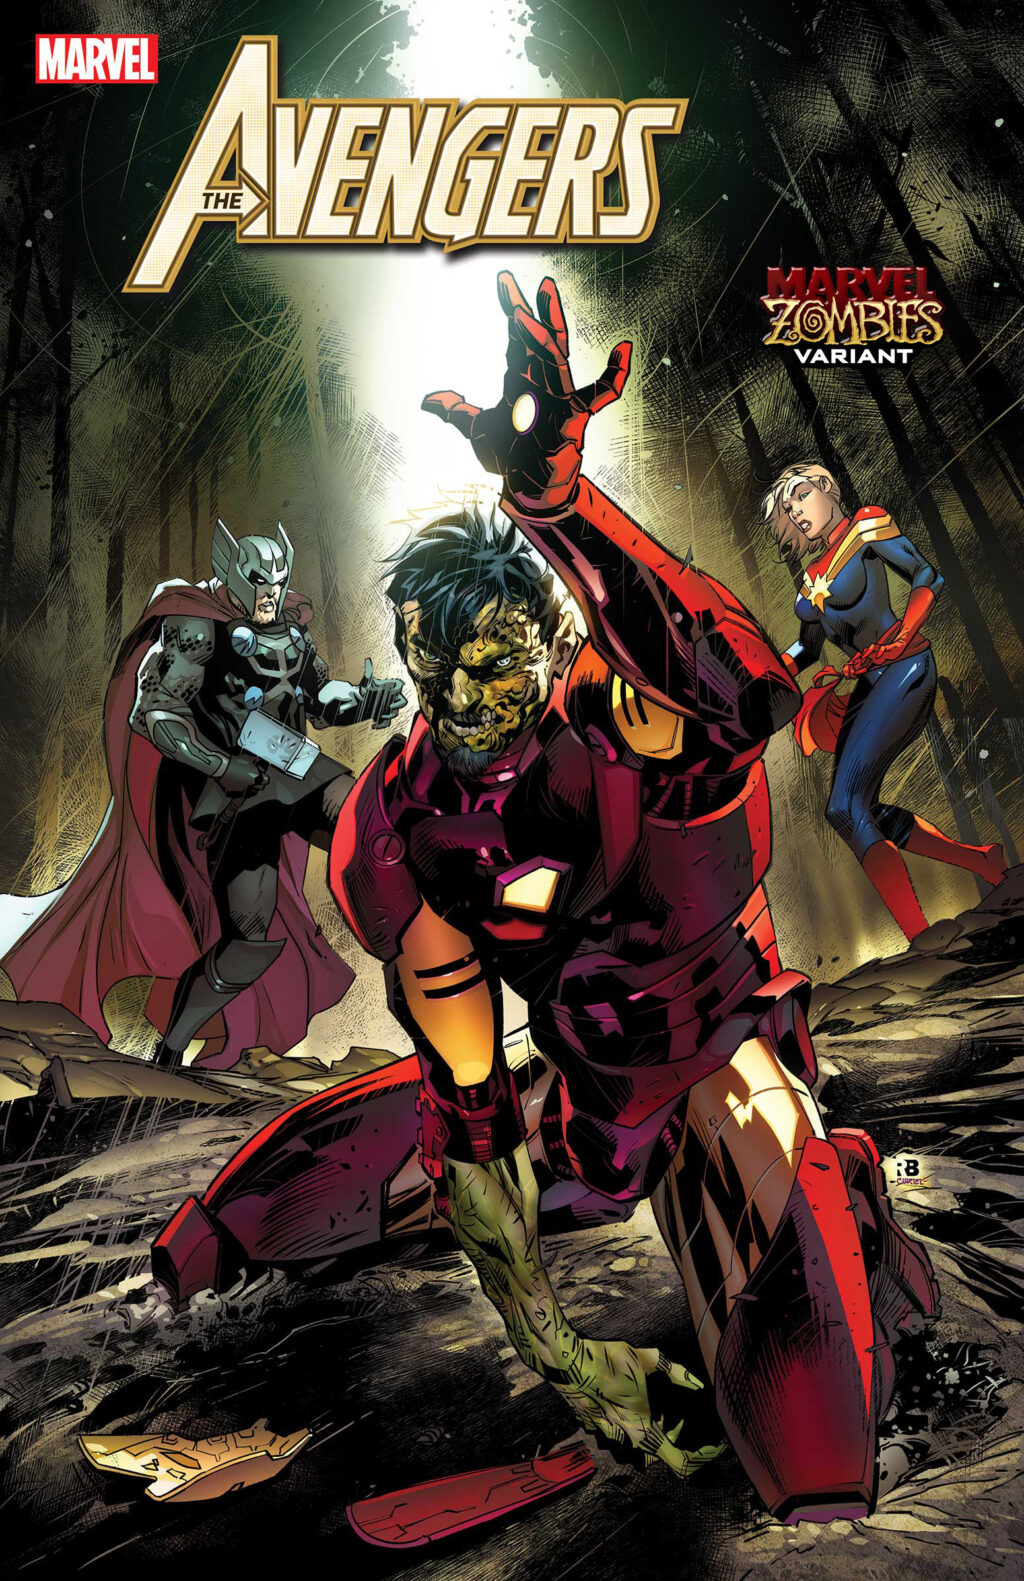 AVEN2018033 zombie var 1024x1581 - Image Gallery: The Undead Rise in April's MARVEL ZOMBIES Variant Covers